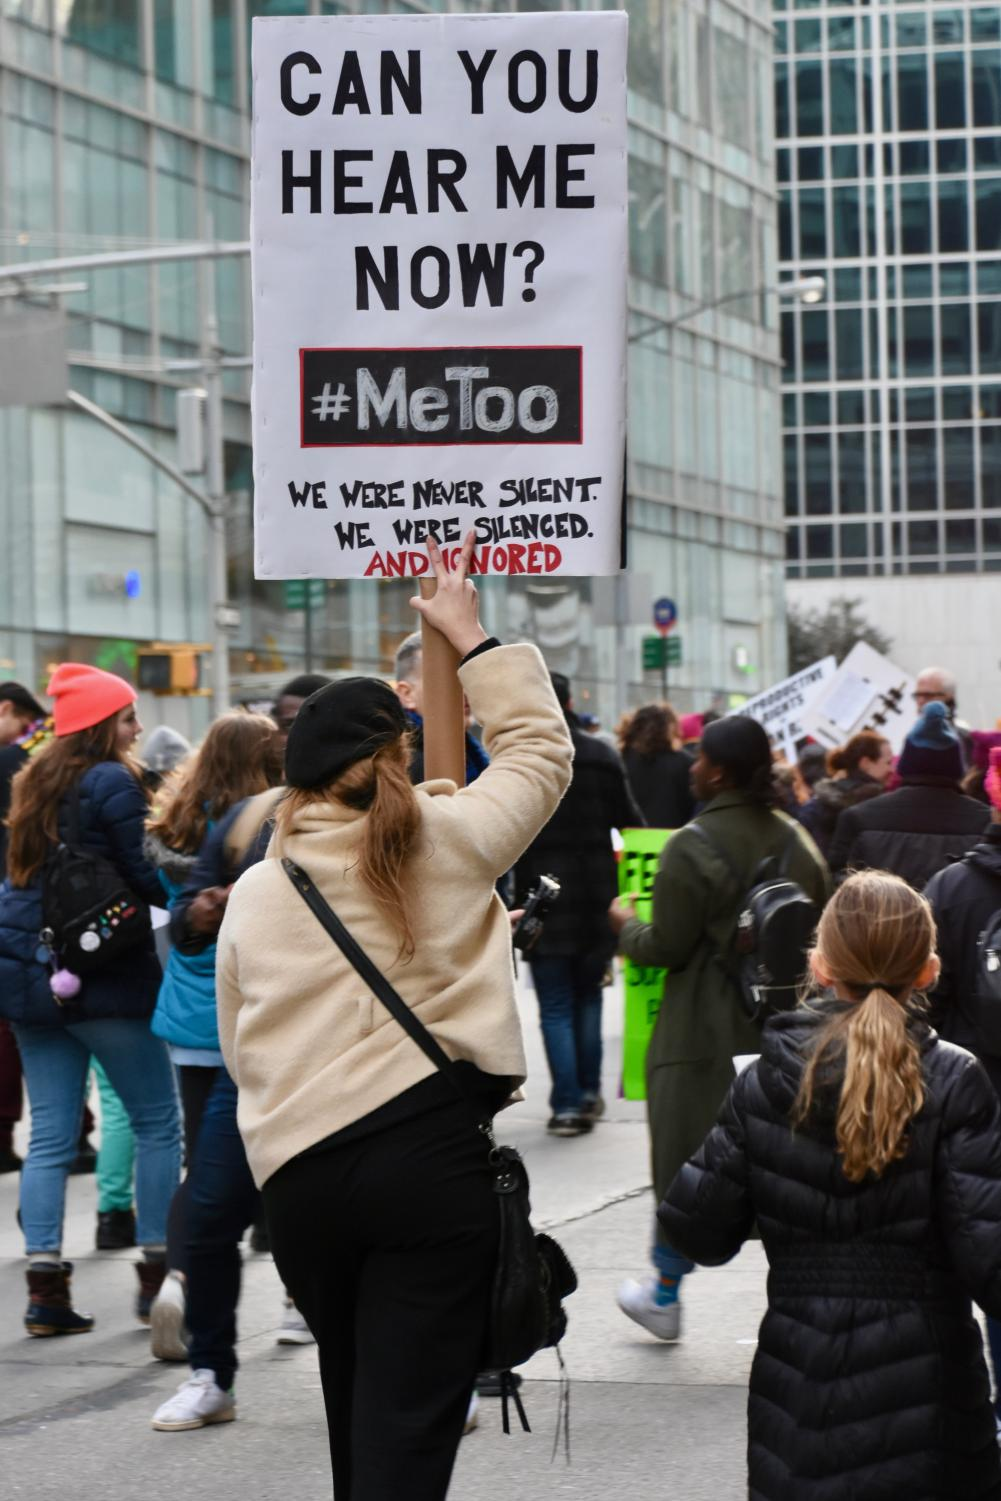 Women join to protest sexual violence in the #metoo movement. These woman have stood up for themselves and each other these past weeks.